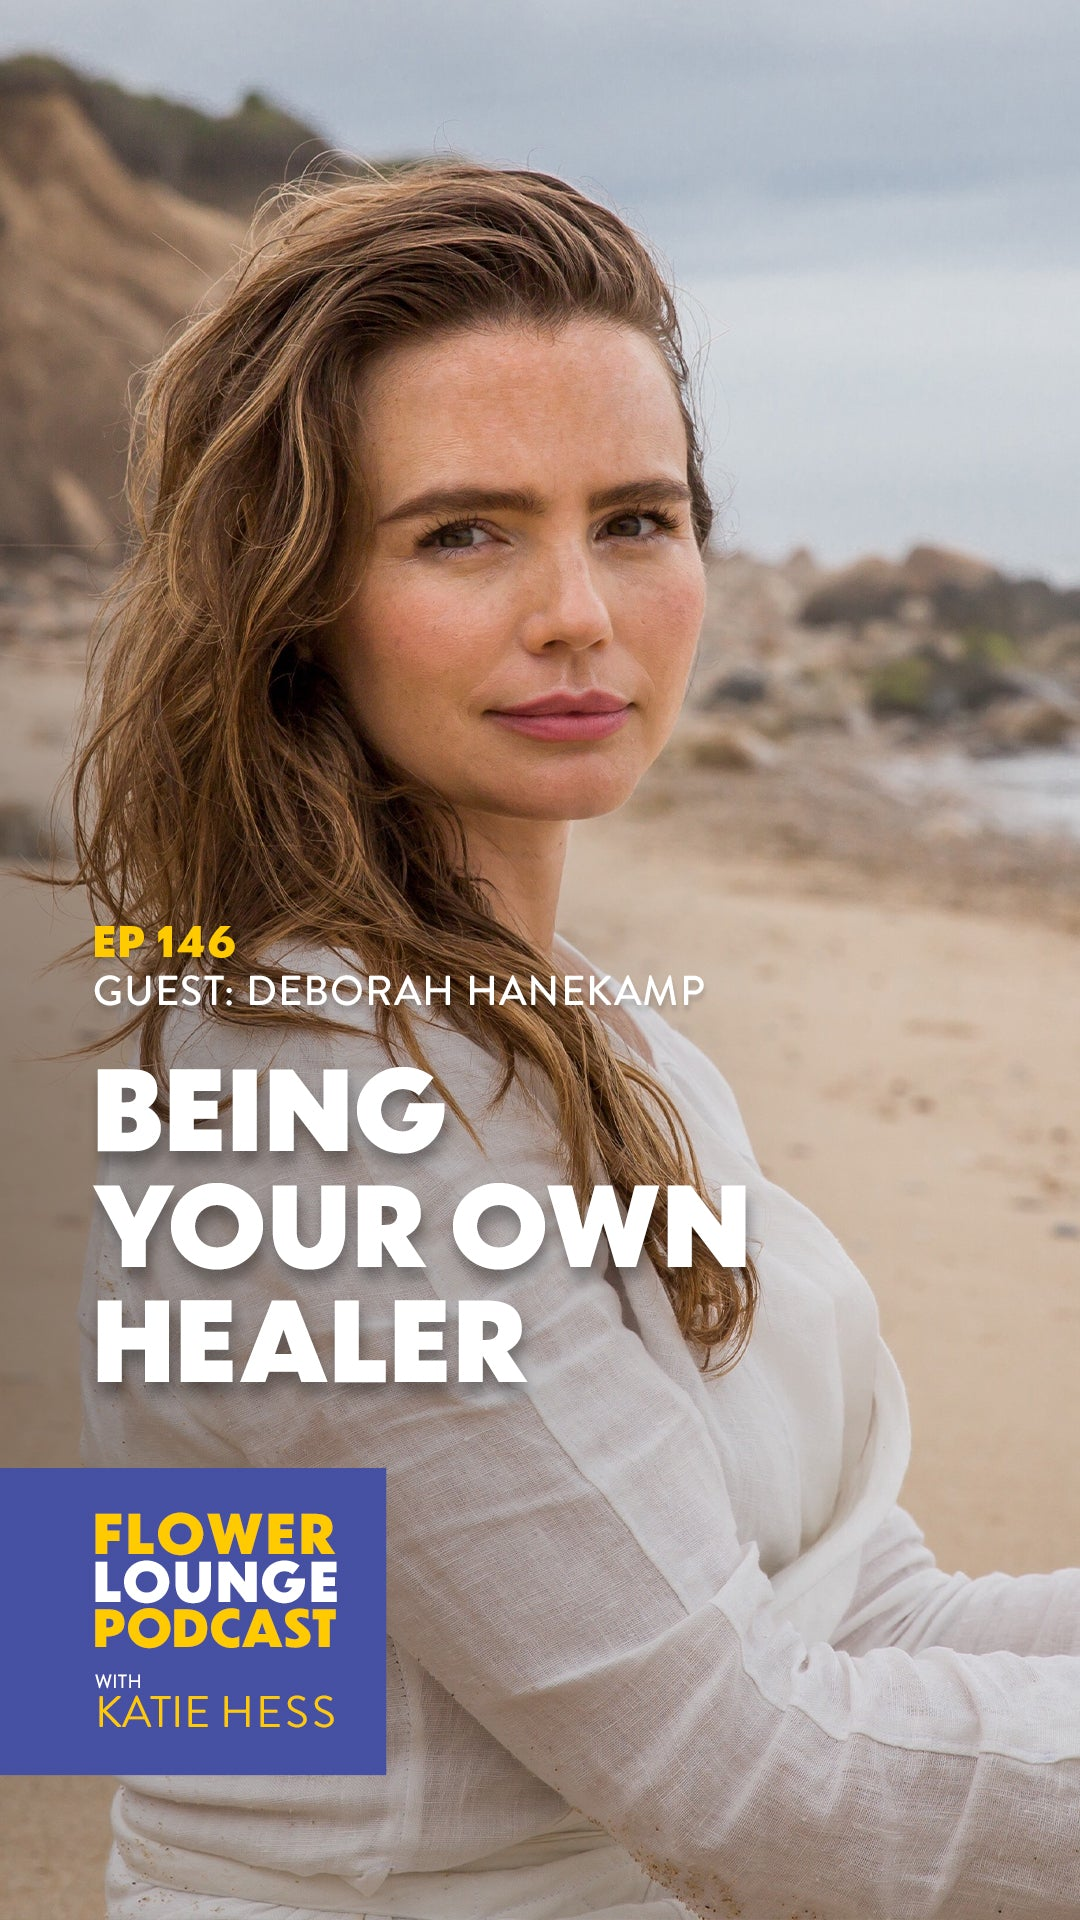 Being Your Own Healer with Deborah Hanekamp of MamaMedicine on the Flowerlounge Podcast with Katie Hess